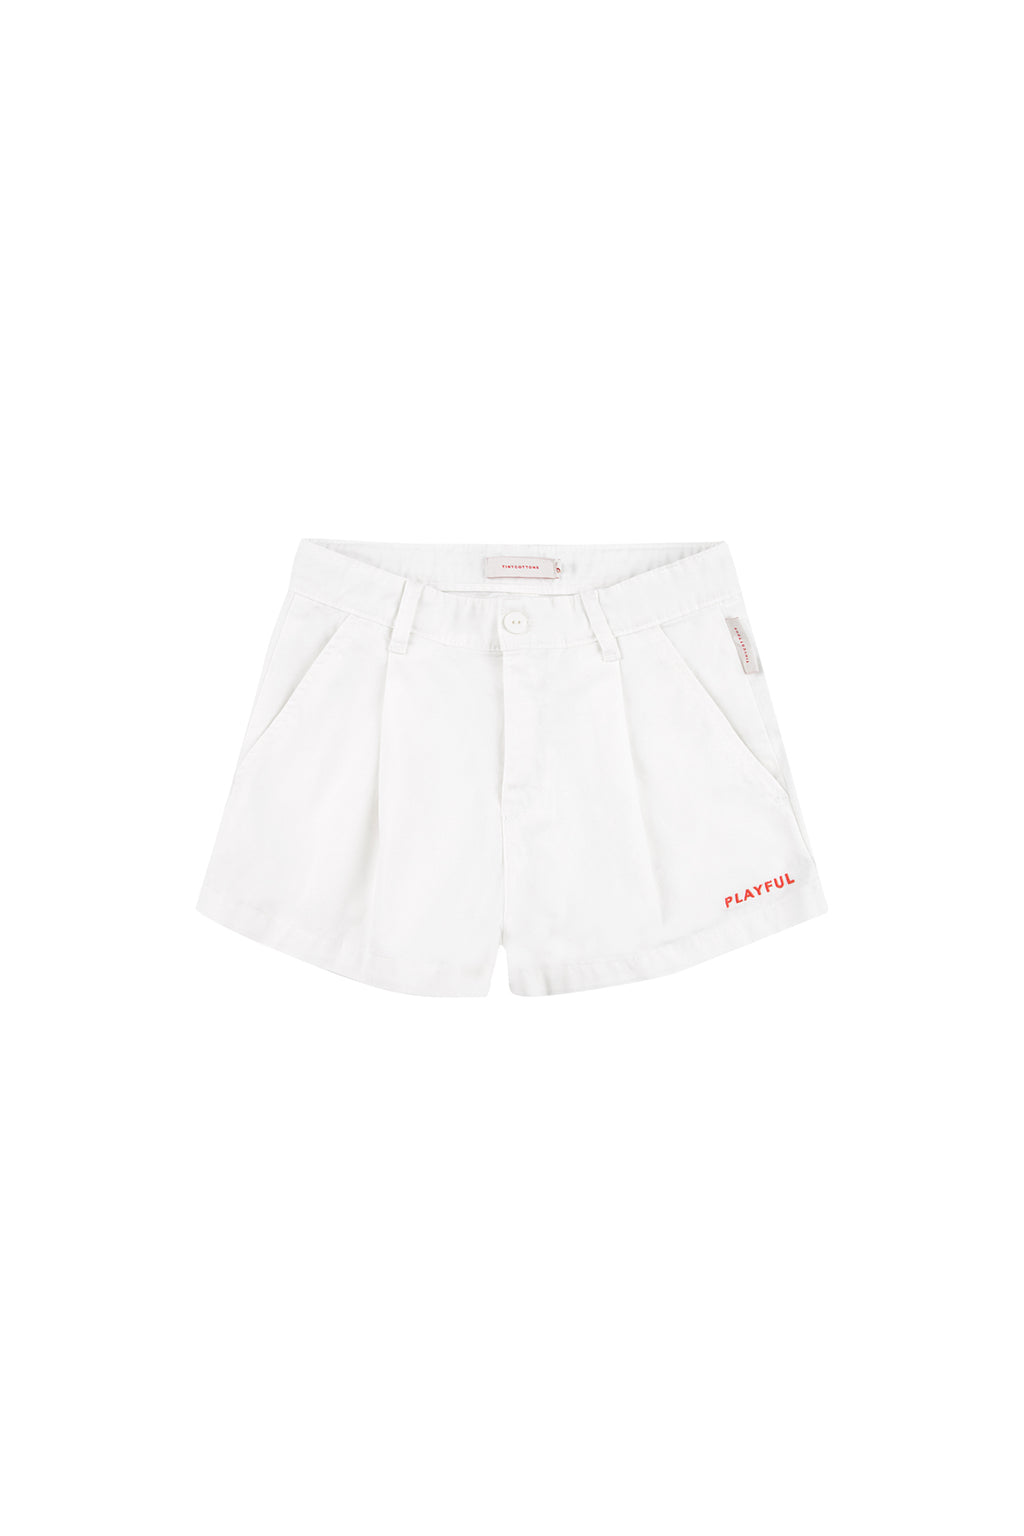 Tiny Cottons Solid Pleat Short